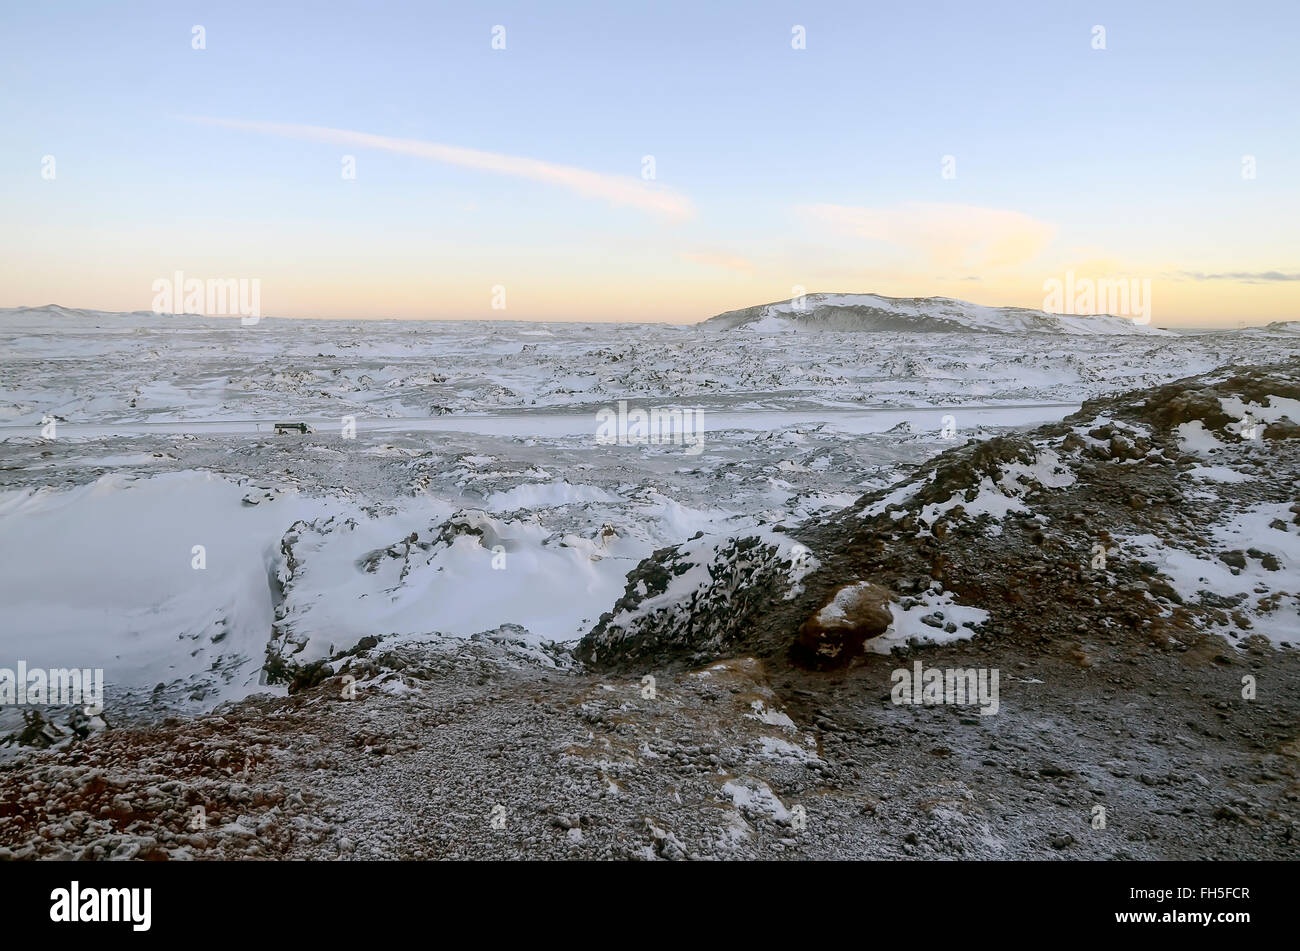 Winter black and white volcanic landscape contrast with color sky Reykjanes Peninsula, Iceland - Stock Image